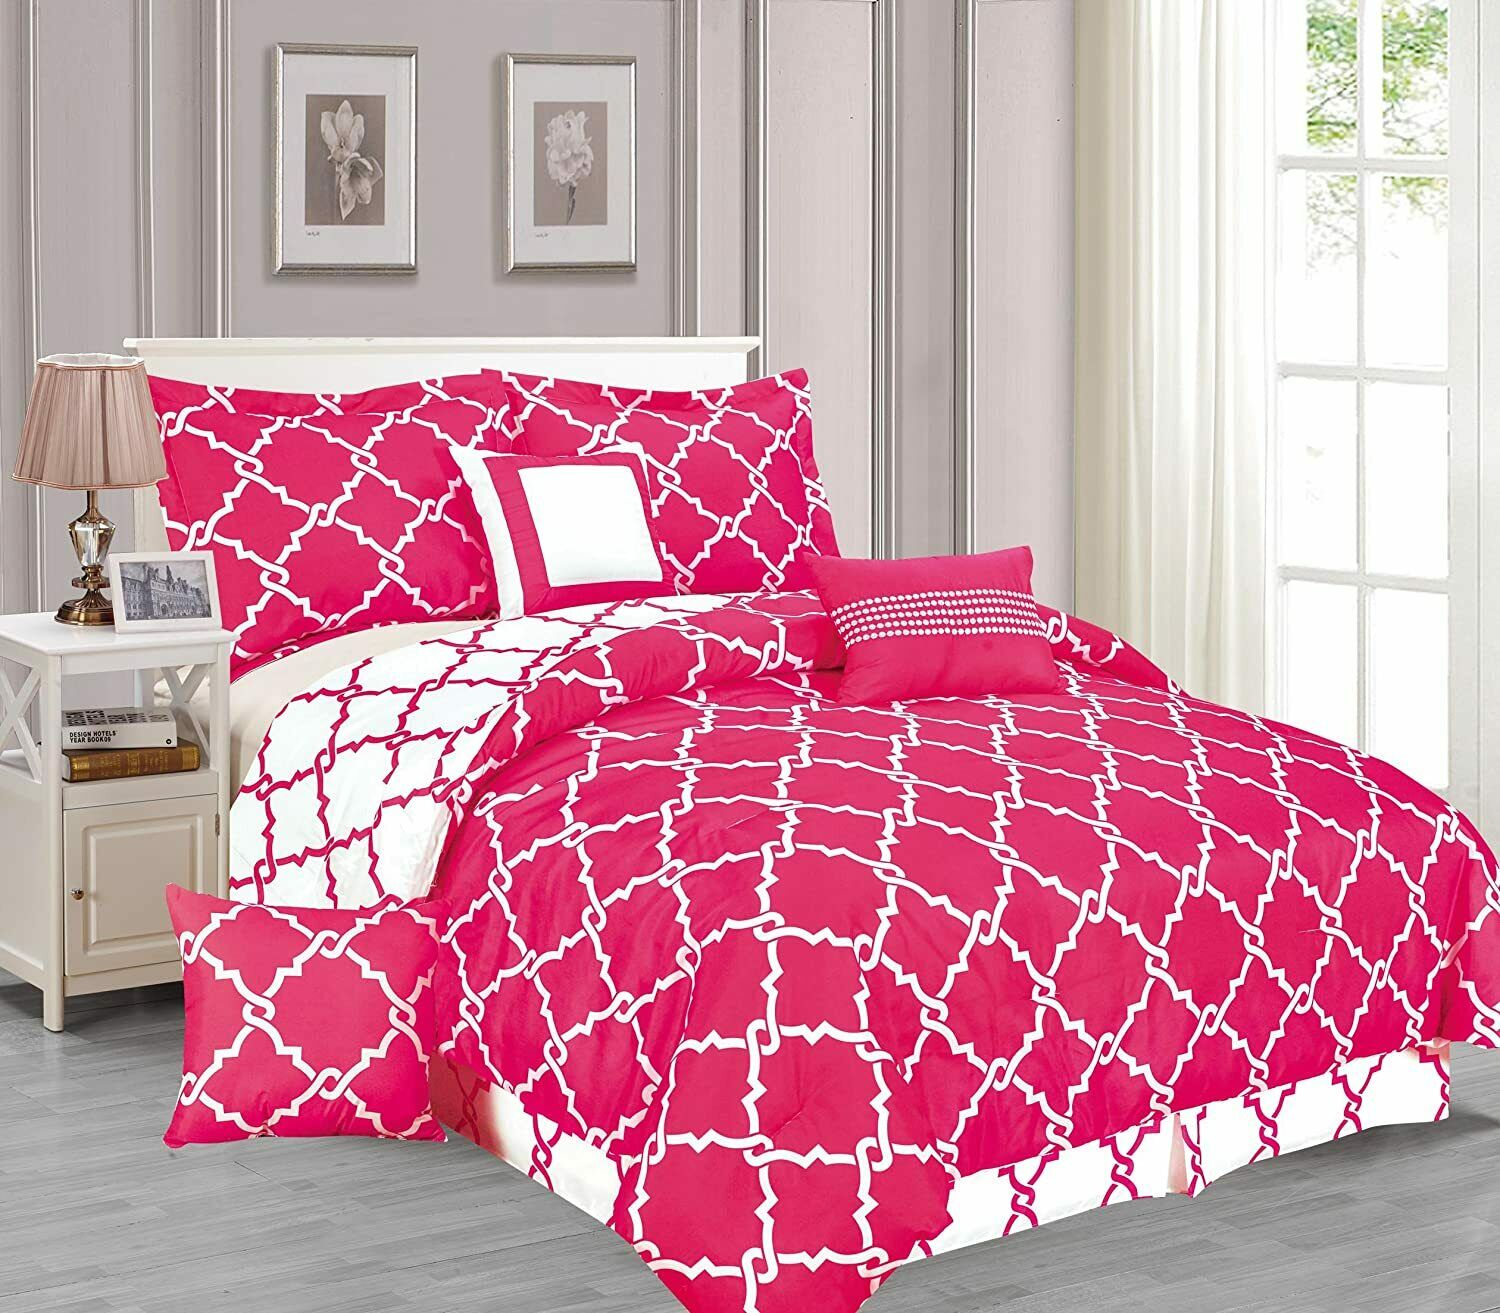 Addison Collection 10-Piece Comforter Set Reversible Bedding with Bed Sheets Queen Size - Hot Pink Geo